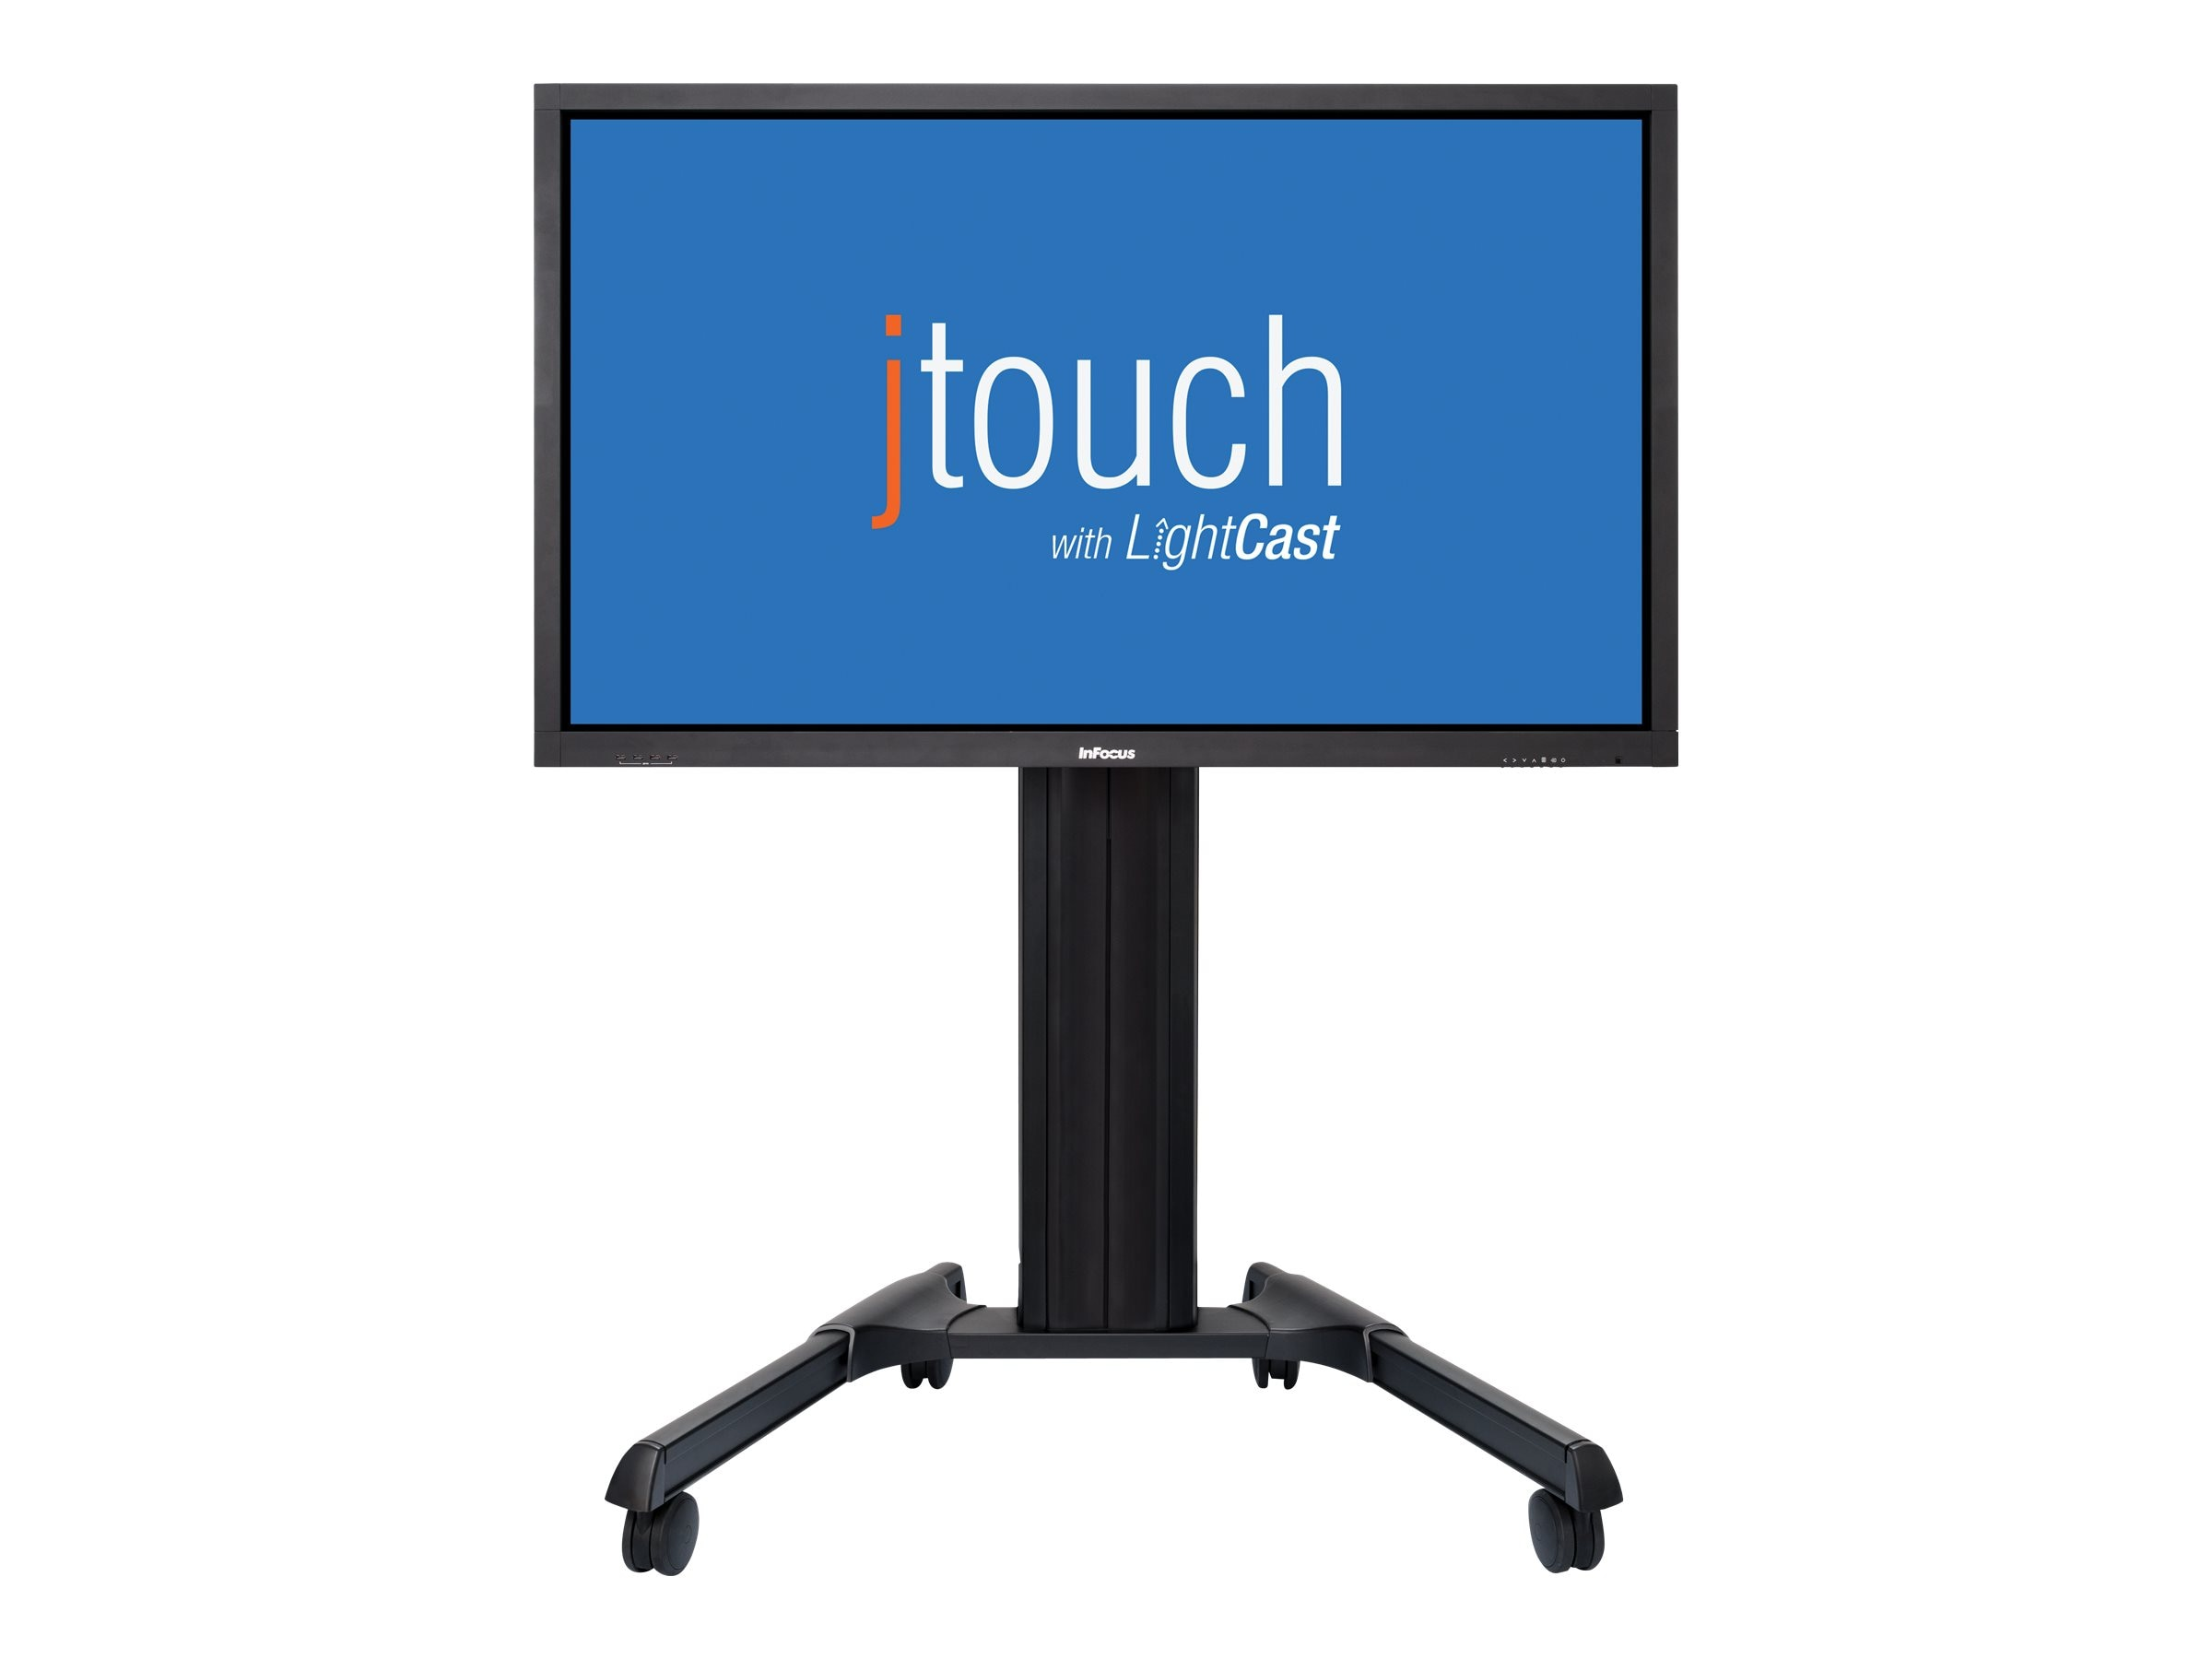 InFocus 65 JTouch Full HD LED-LCD Interactive Whiteboard with Wireless Collaboration, Black